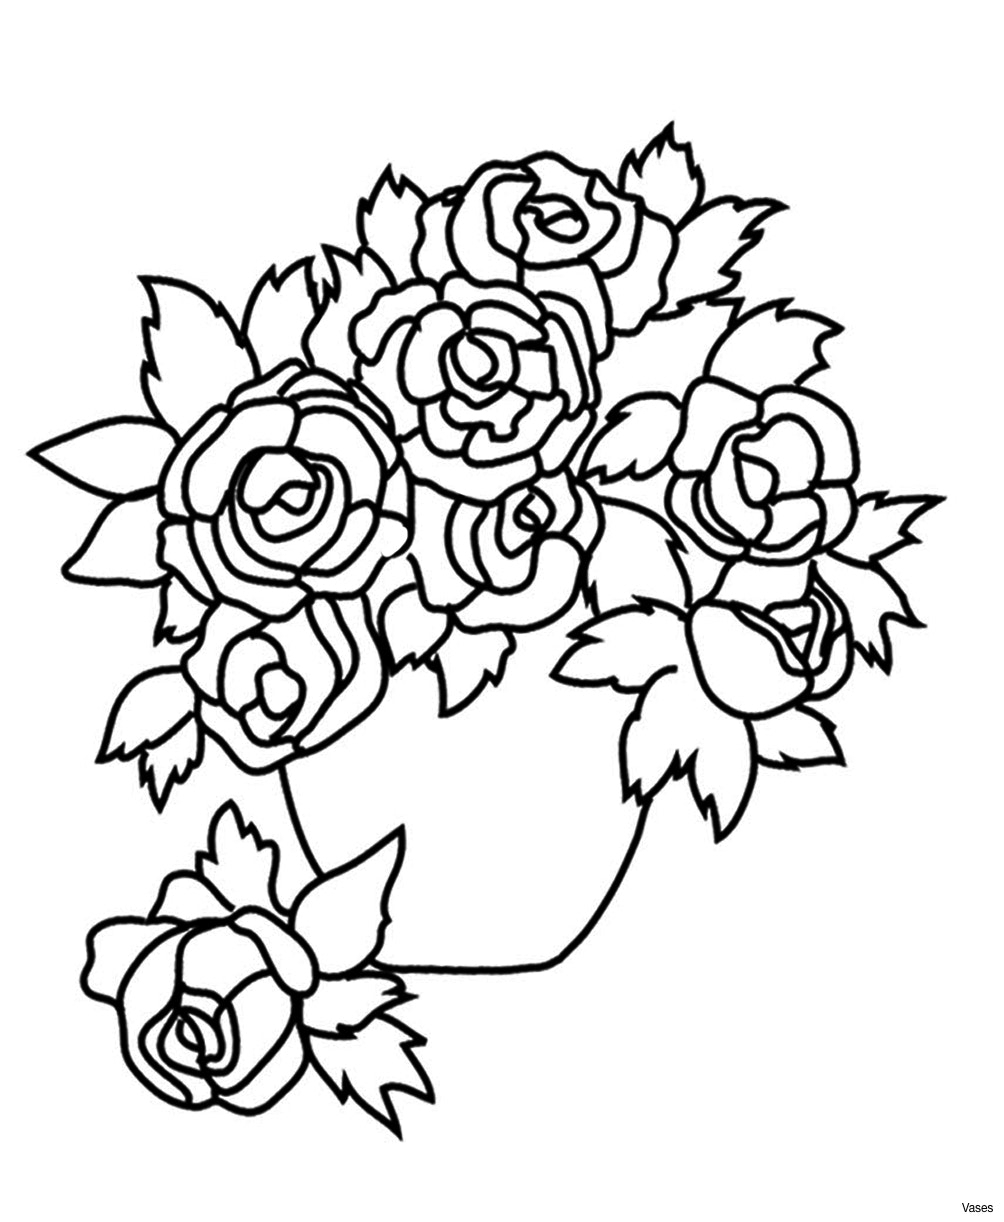 1004x1222 Best Of Coloring Pages Of Flowers In A Vase Design Free Coloring